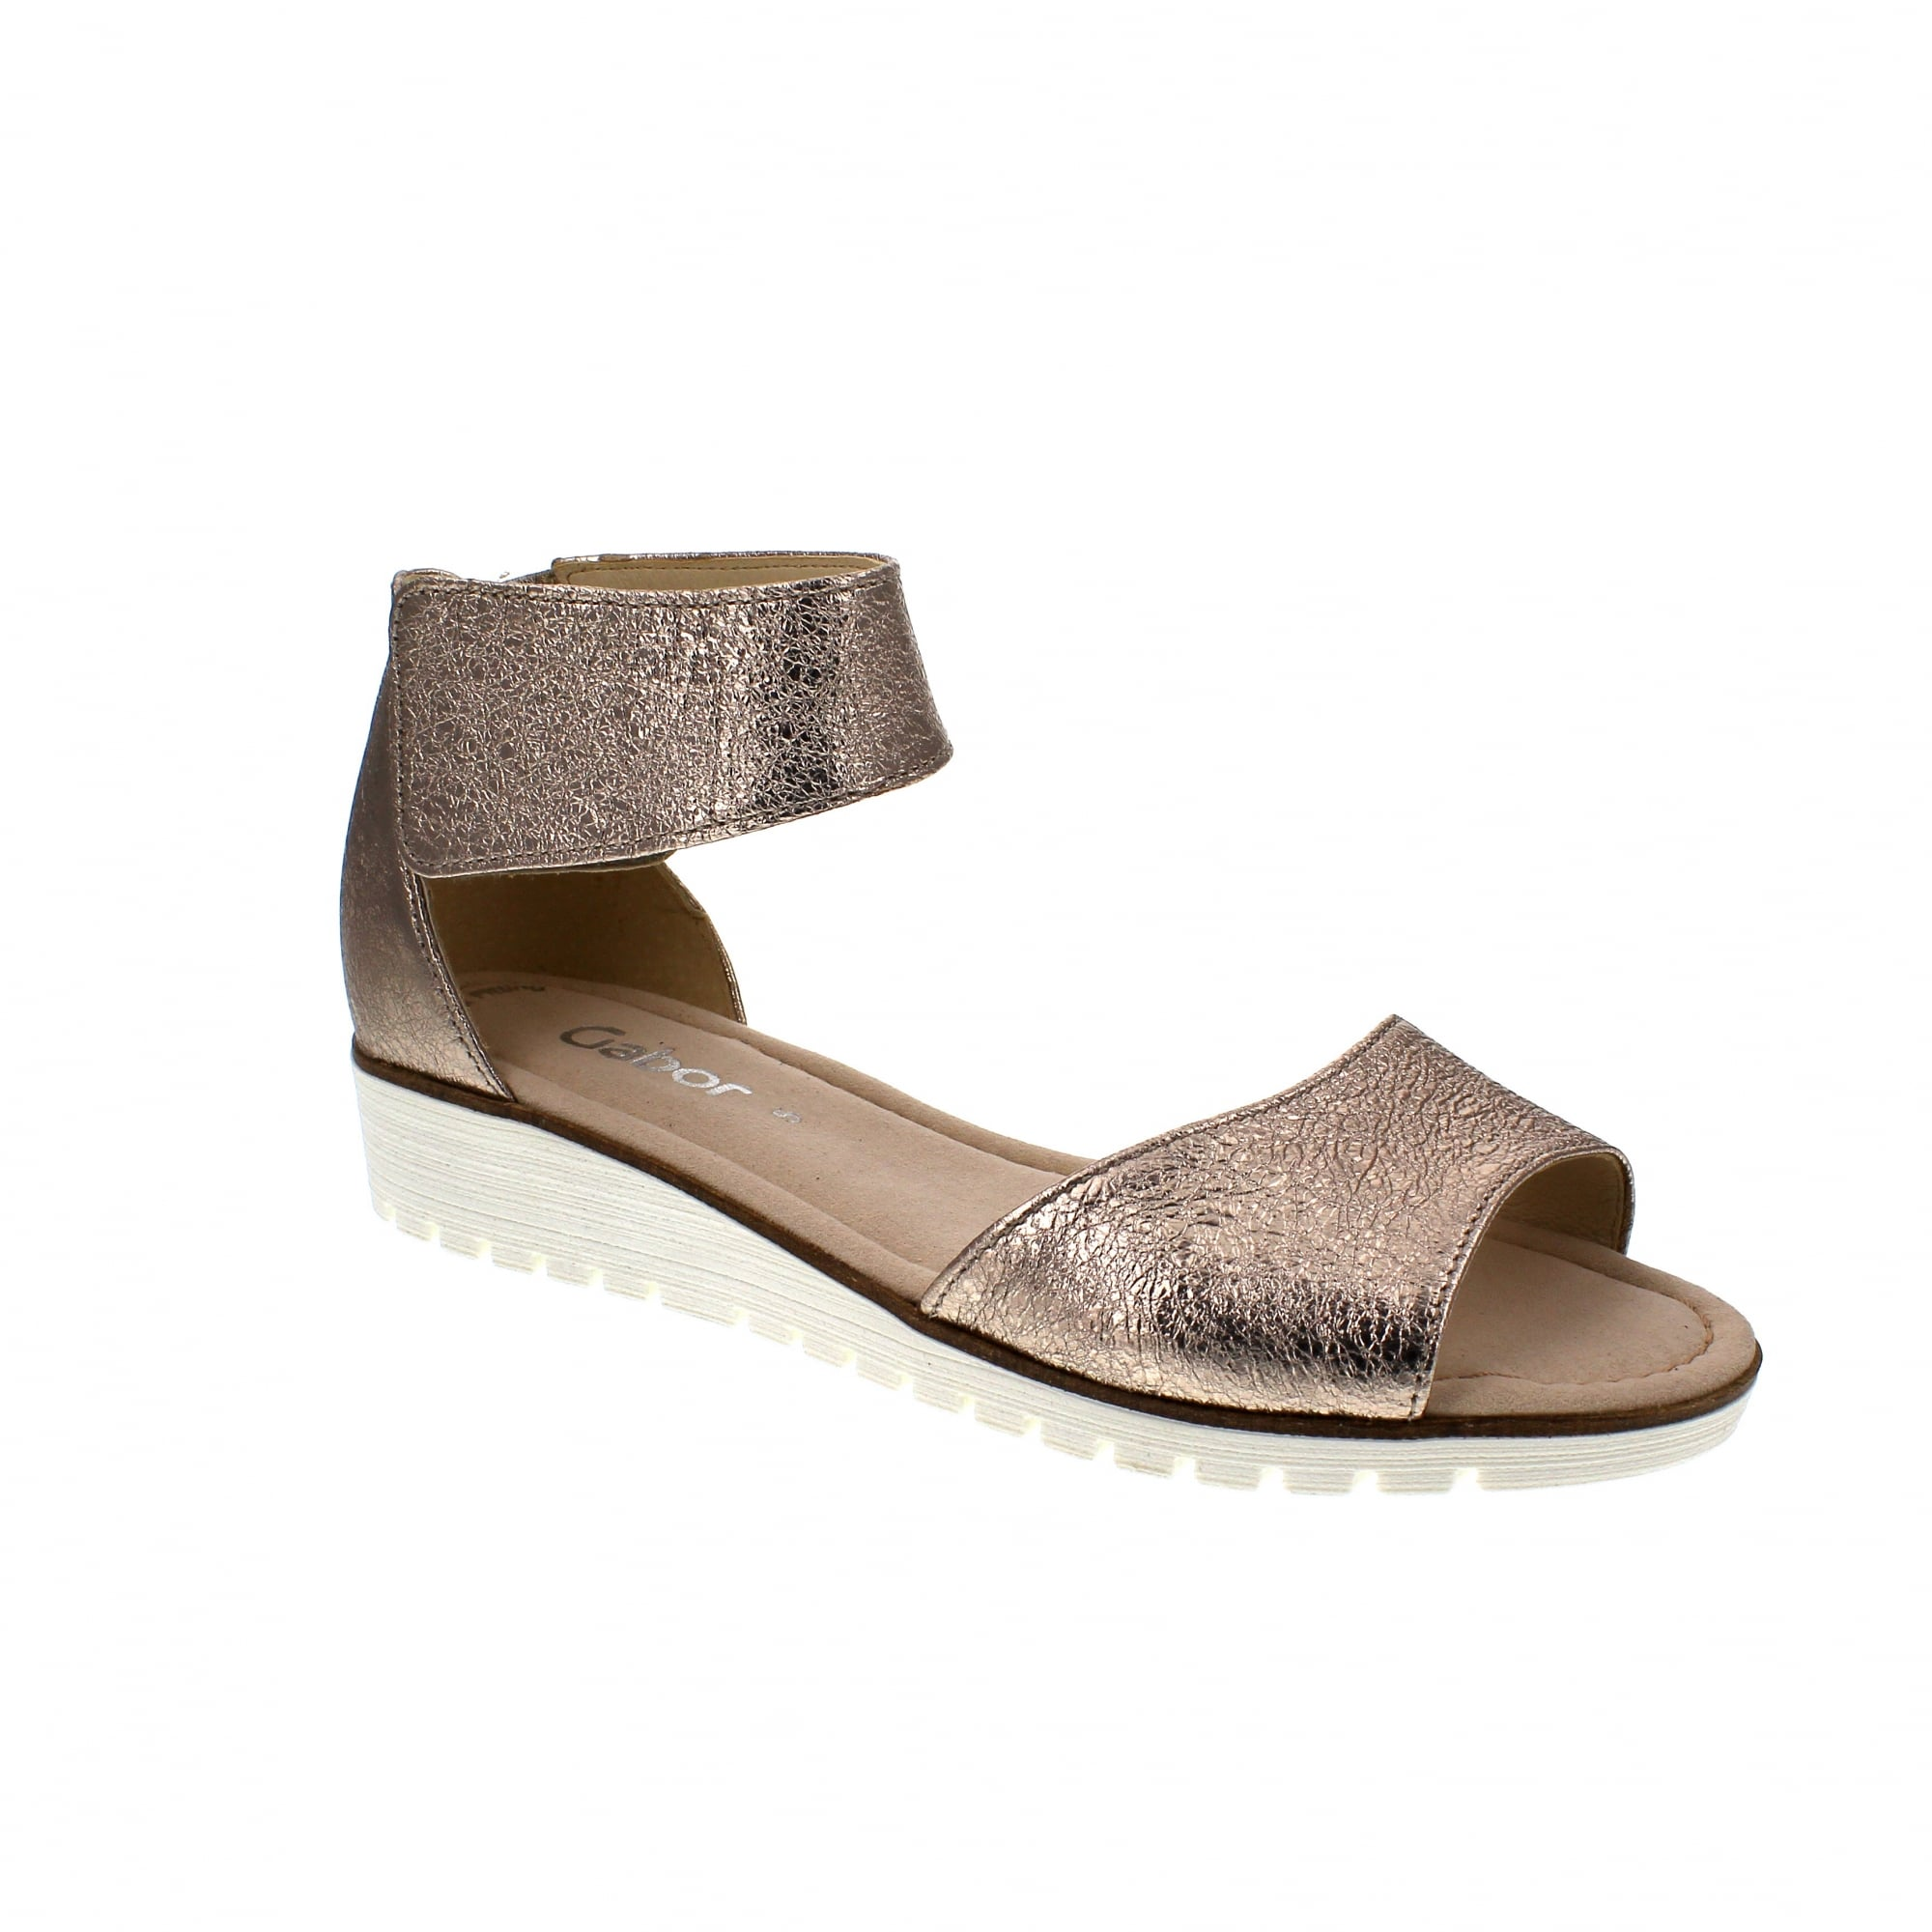 4f2a904267d9 Gabor Penny 84-570-62 Pewter Leather Womens Sandals